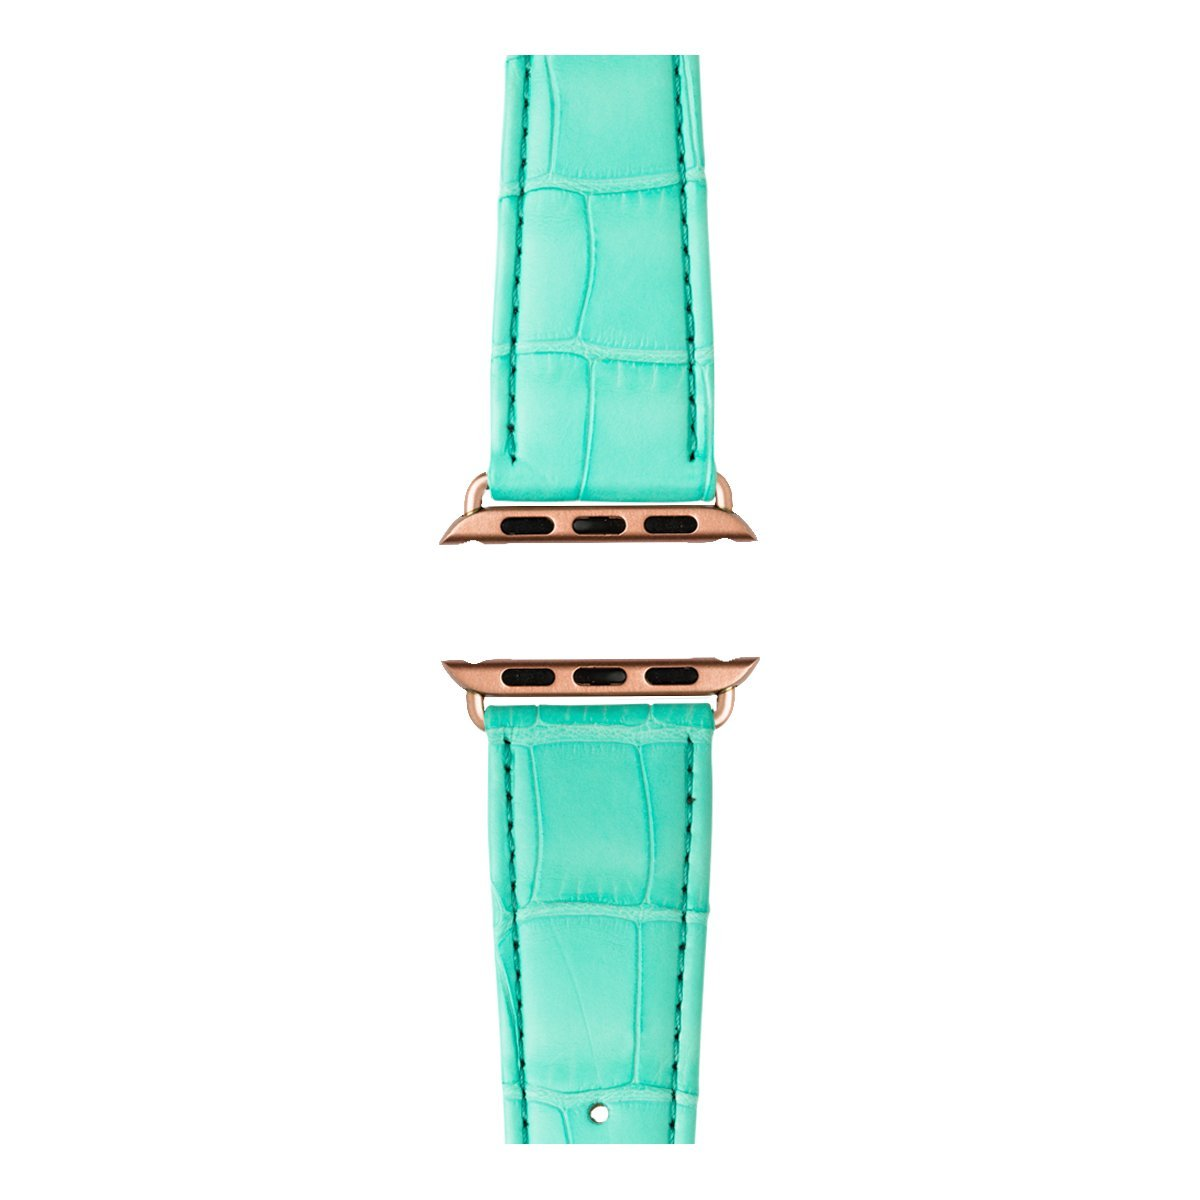 Roobaya | Premium Alligator Leather Apple Watch Band in Turquoise | Includes Adapters matching the Color of the Apple Watch, Case Color:Rose Gold Aluminum, Size:38 mm by Roobaya (Image #3)